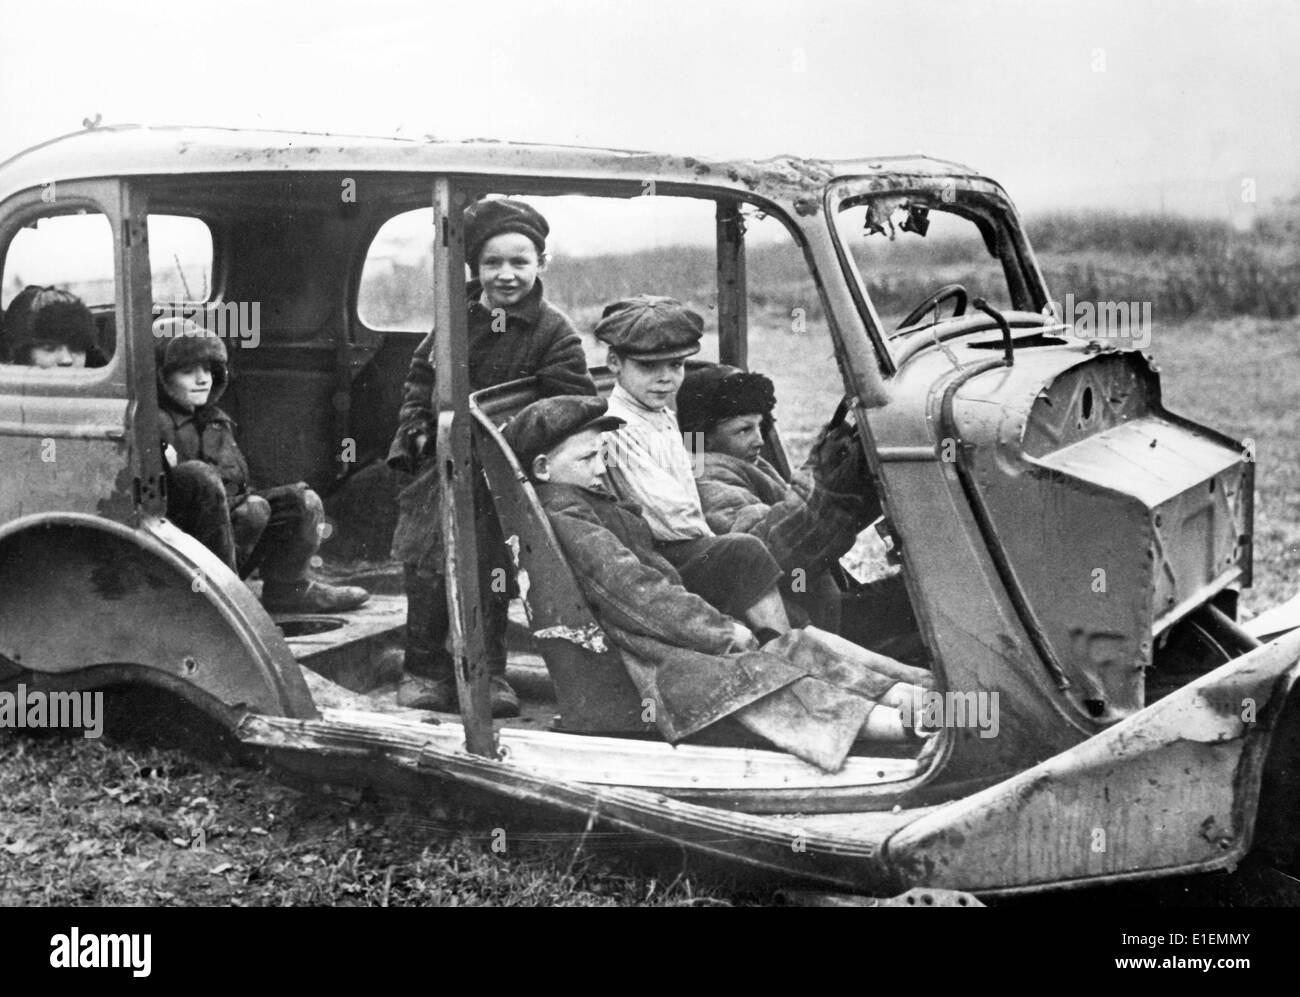 The Nazi news image shows local children playing in the wreck of a car in the German occupied areas along the Eastern Stock Photo